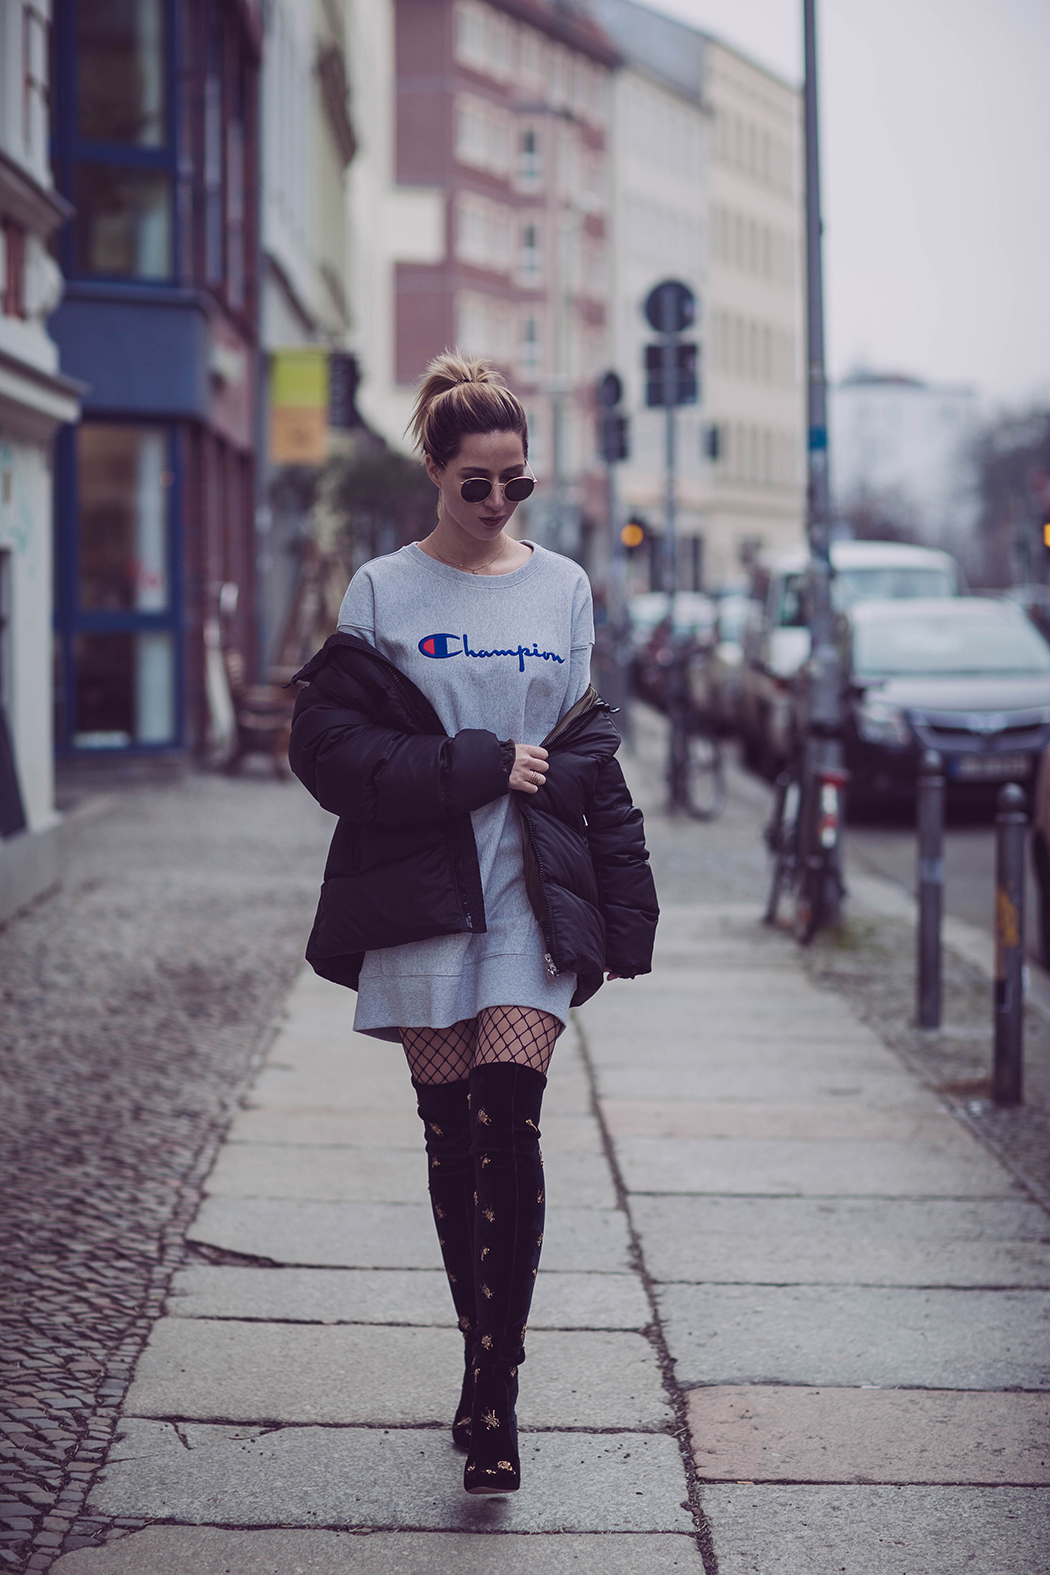 Fashionblog-Fashionblogger-Fashion-Blog-Blogger-Muenchen-Deutschland-Streetstyle-Mode-Fashion-Week-Berlin-2017-Lindarella20170120_05